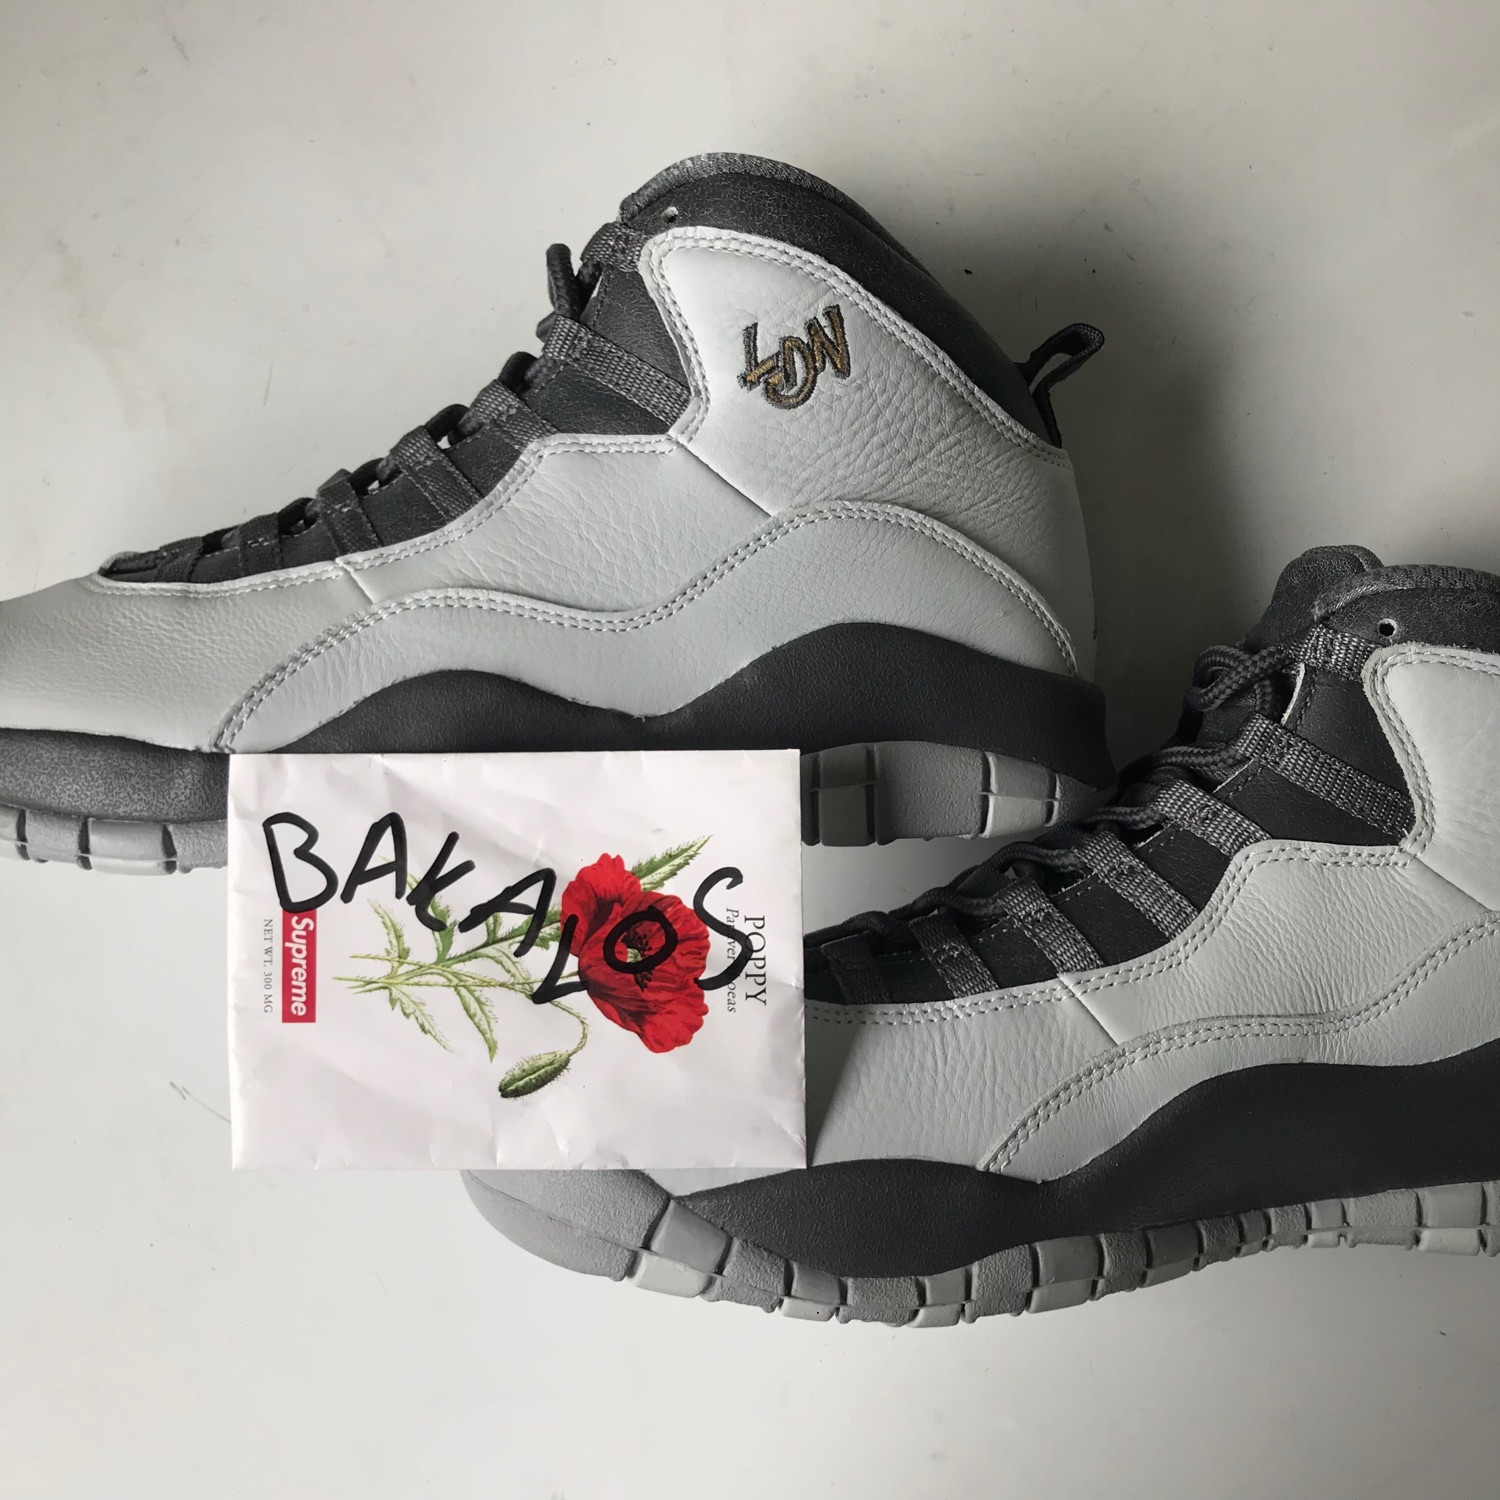 uk availability 0737c c9207 Air Jordan 10 Retro London Pack